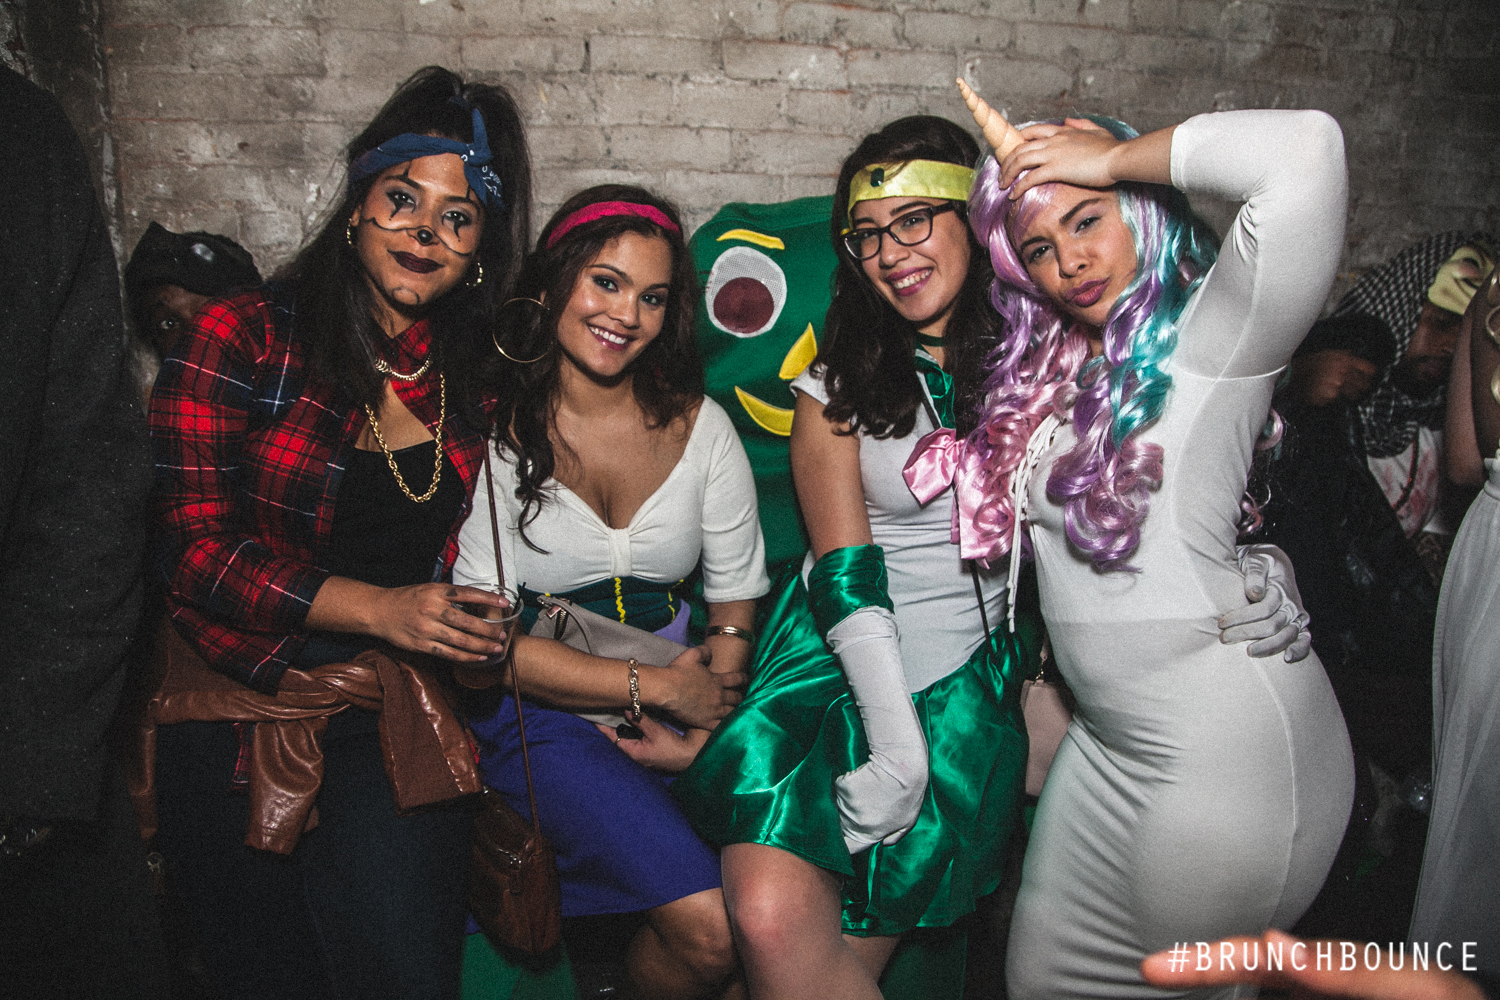 brunch-bounce-x-adidas-originals-halloween-103115_22133920823_o.jpg